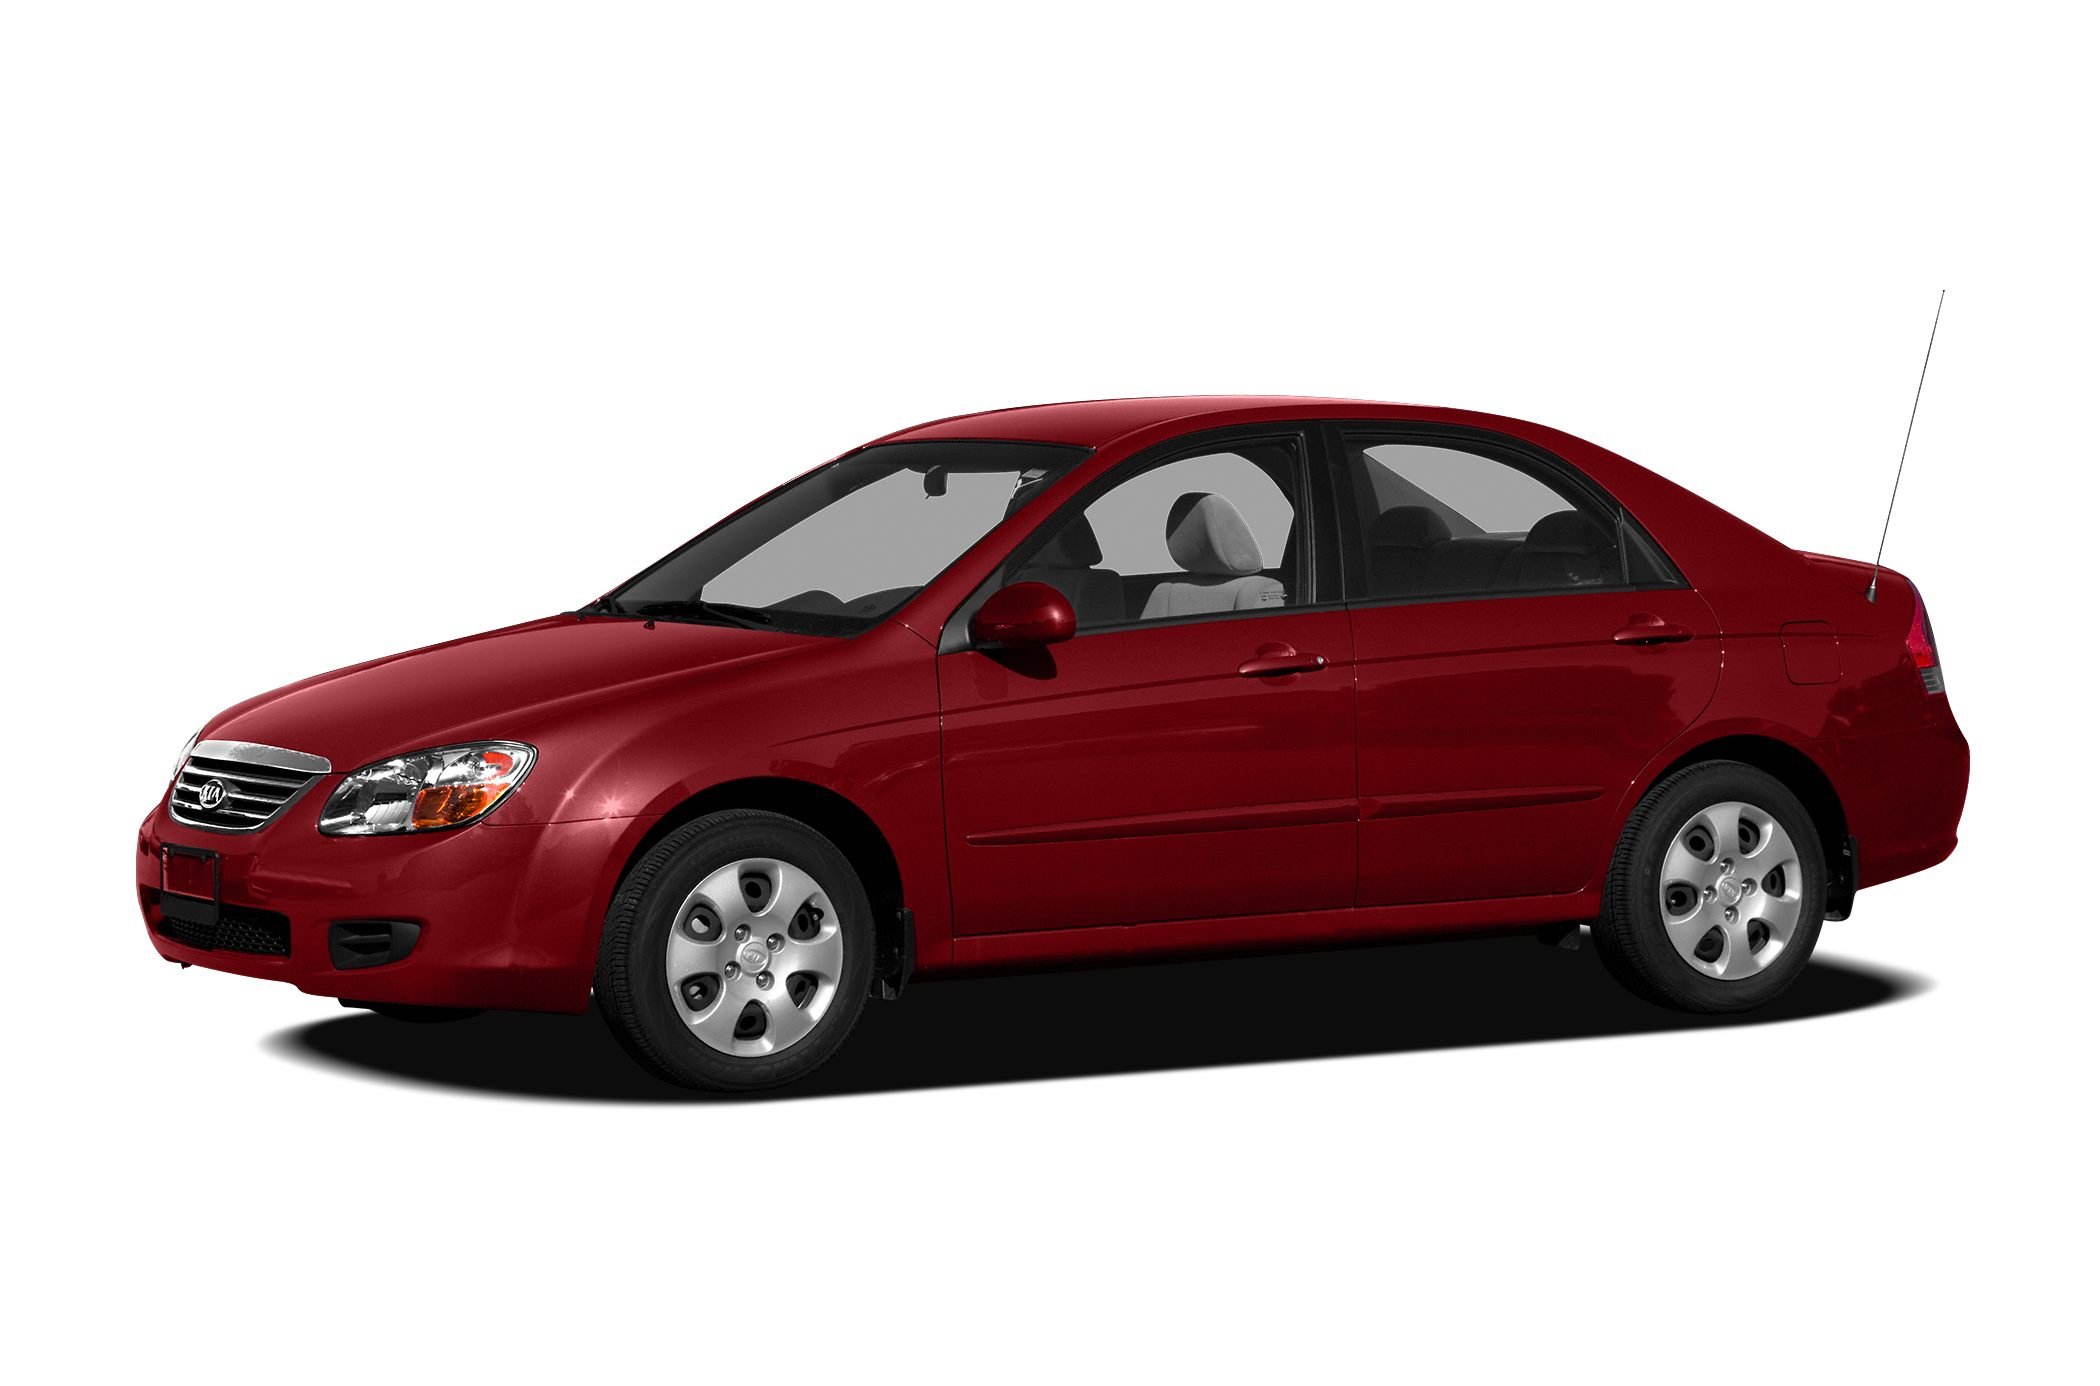 Cars for Sale Near Me for Under 5000 Luxury Used Cars for Sale Under 5 000 Miles and Less Than 5 000 Dollars